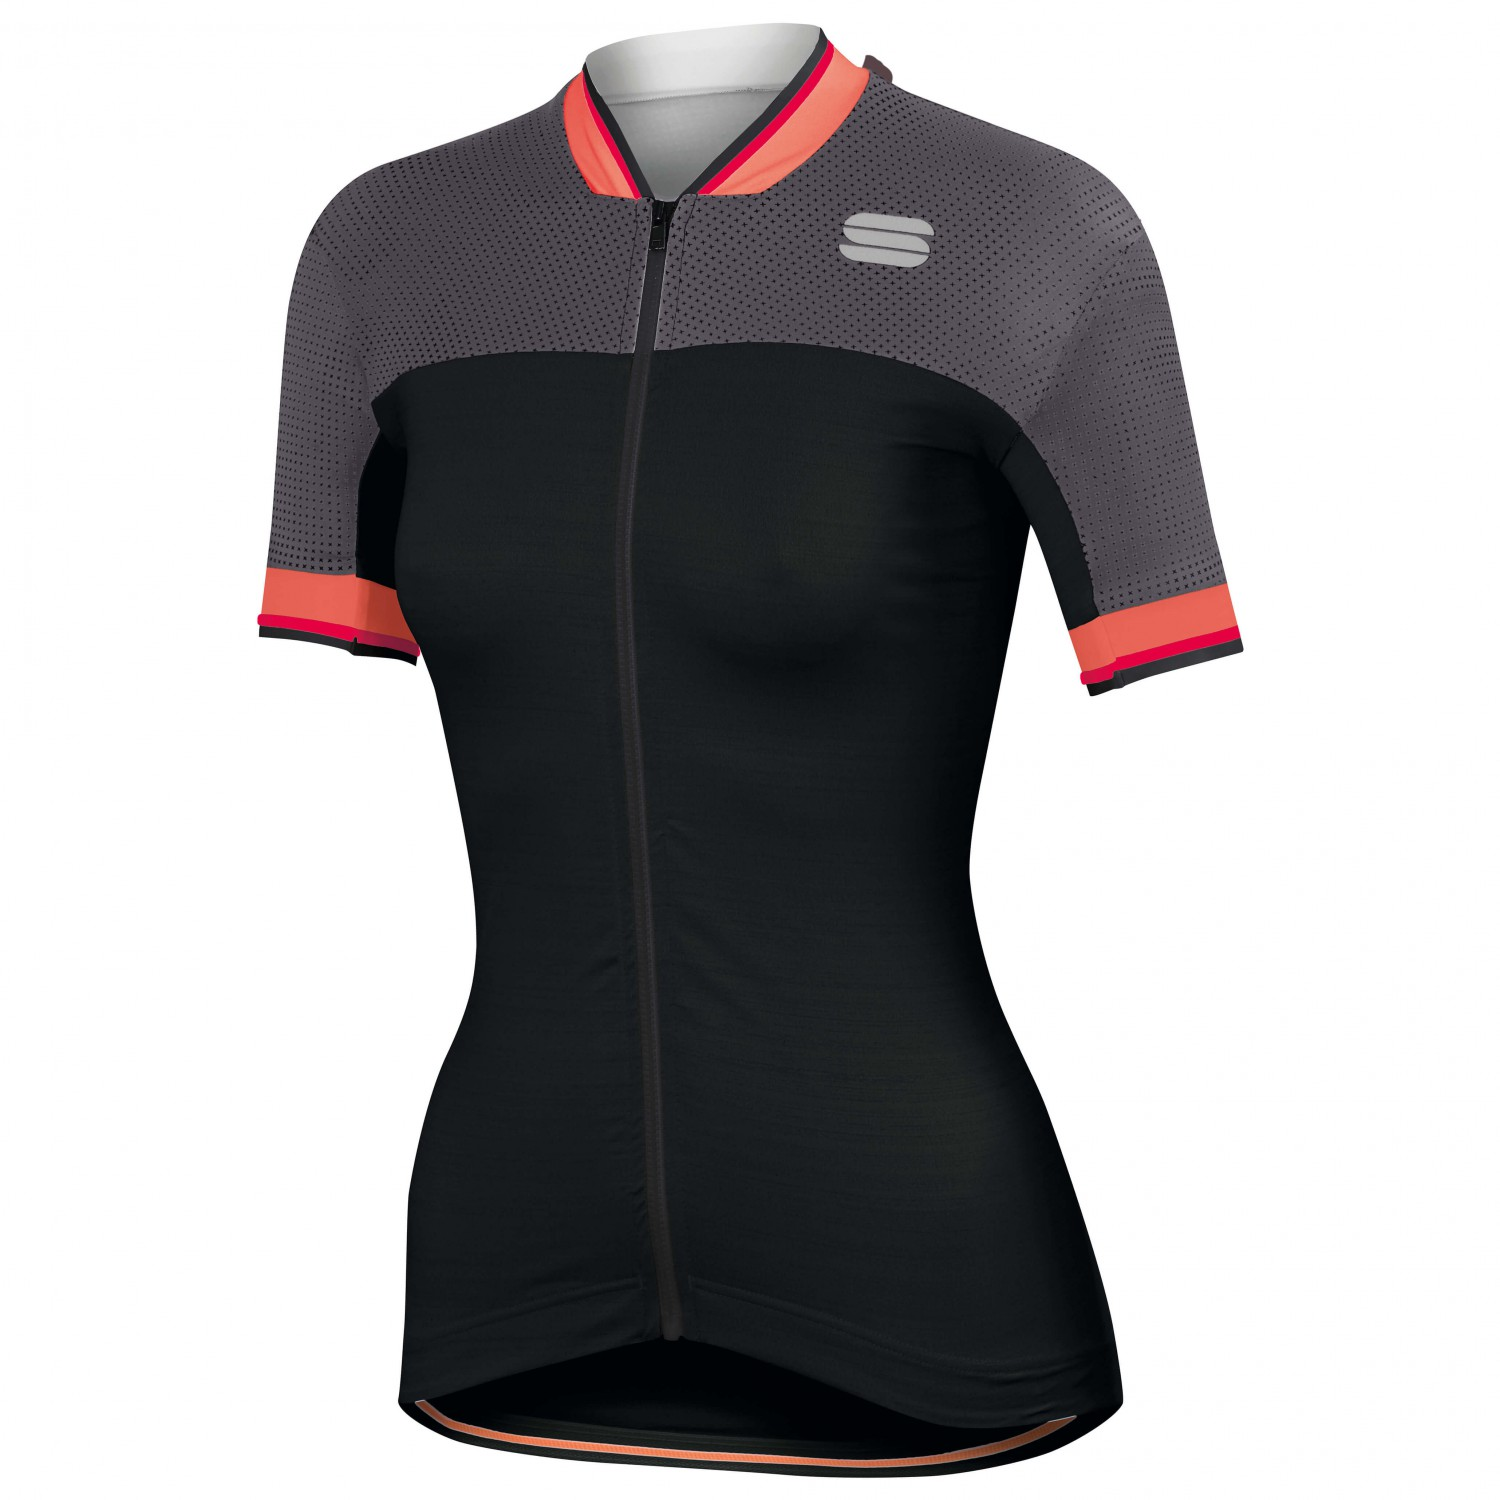 a8054f55f6c Sportful Grace Jersey - Cycling Jersey Women s